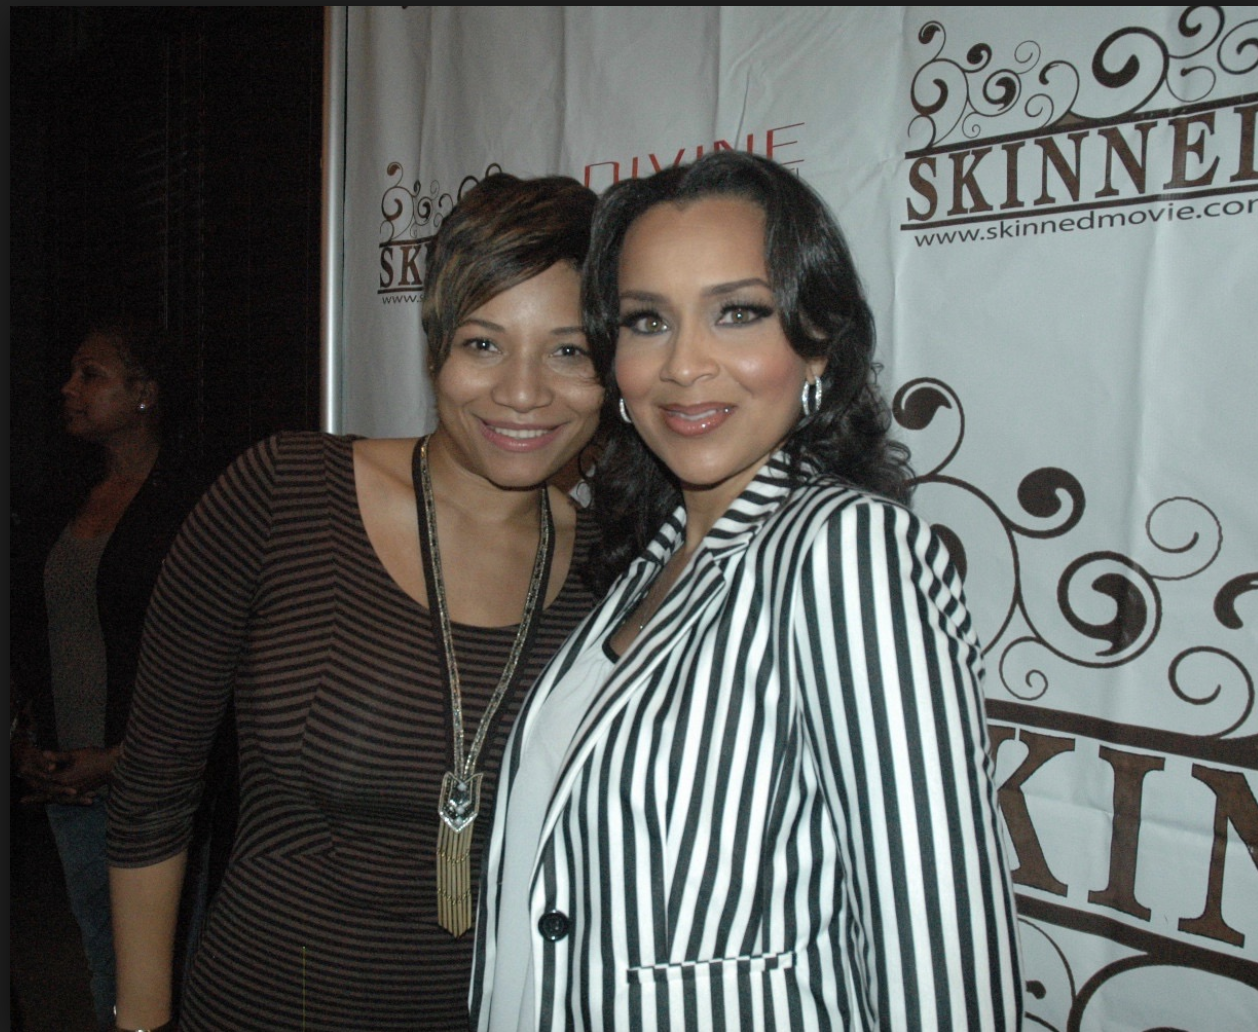 LisaRaye at the premiere screening for Skinned